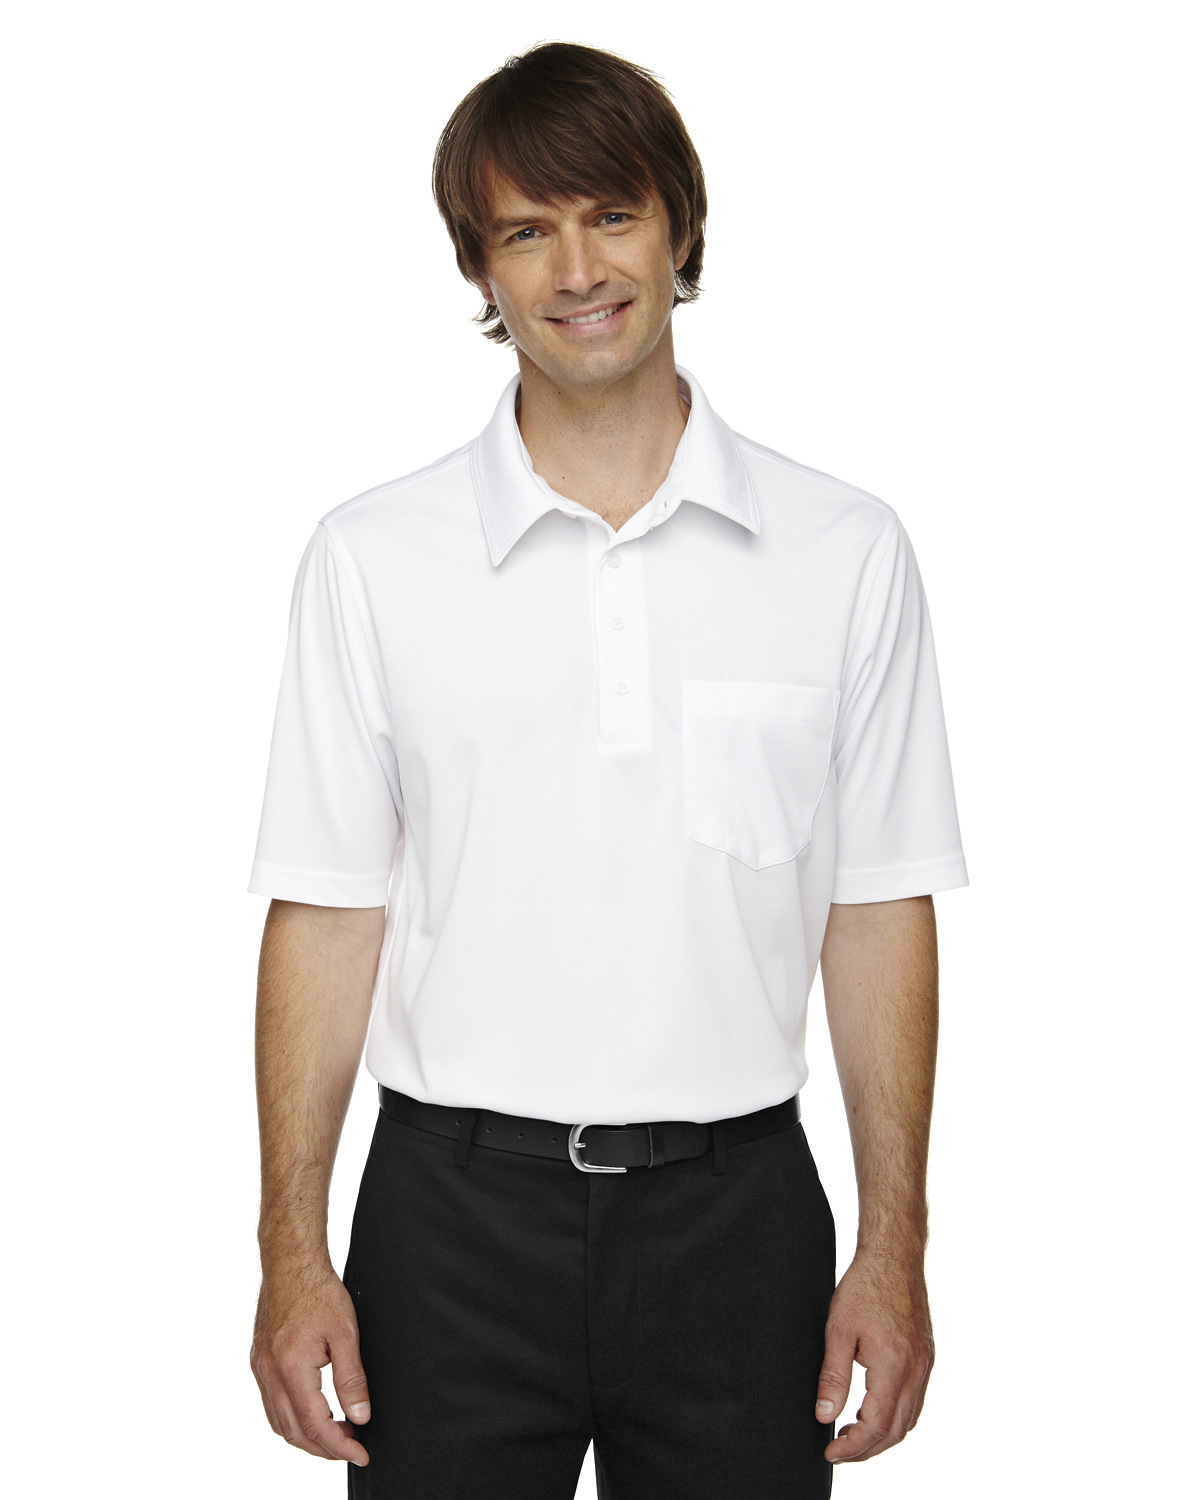 Men's Tall Eperformance™ Snag Protection Plus Polo